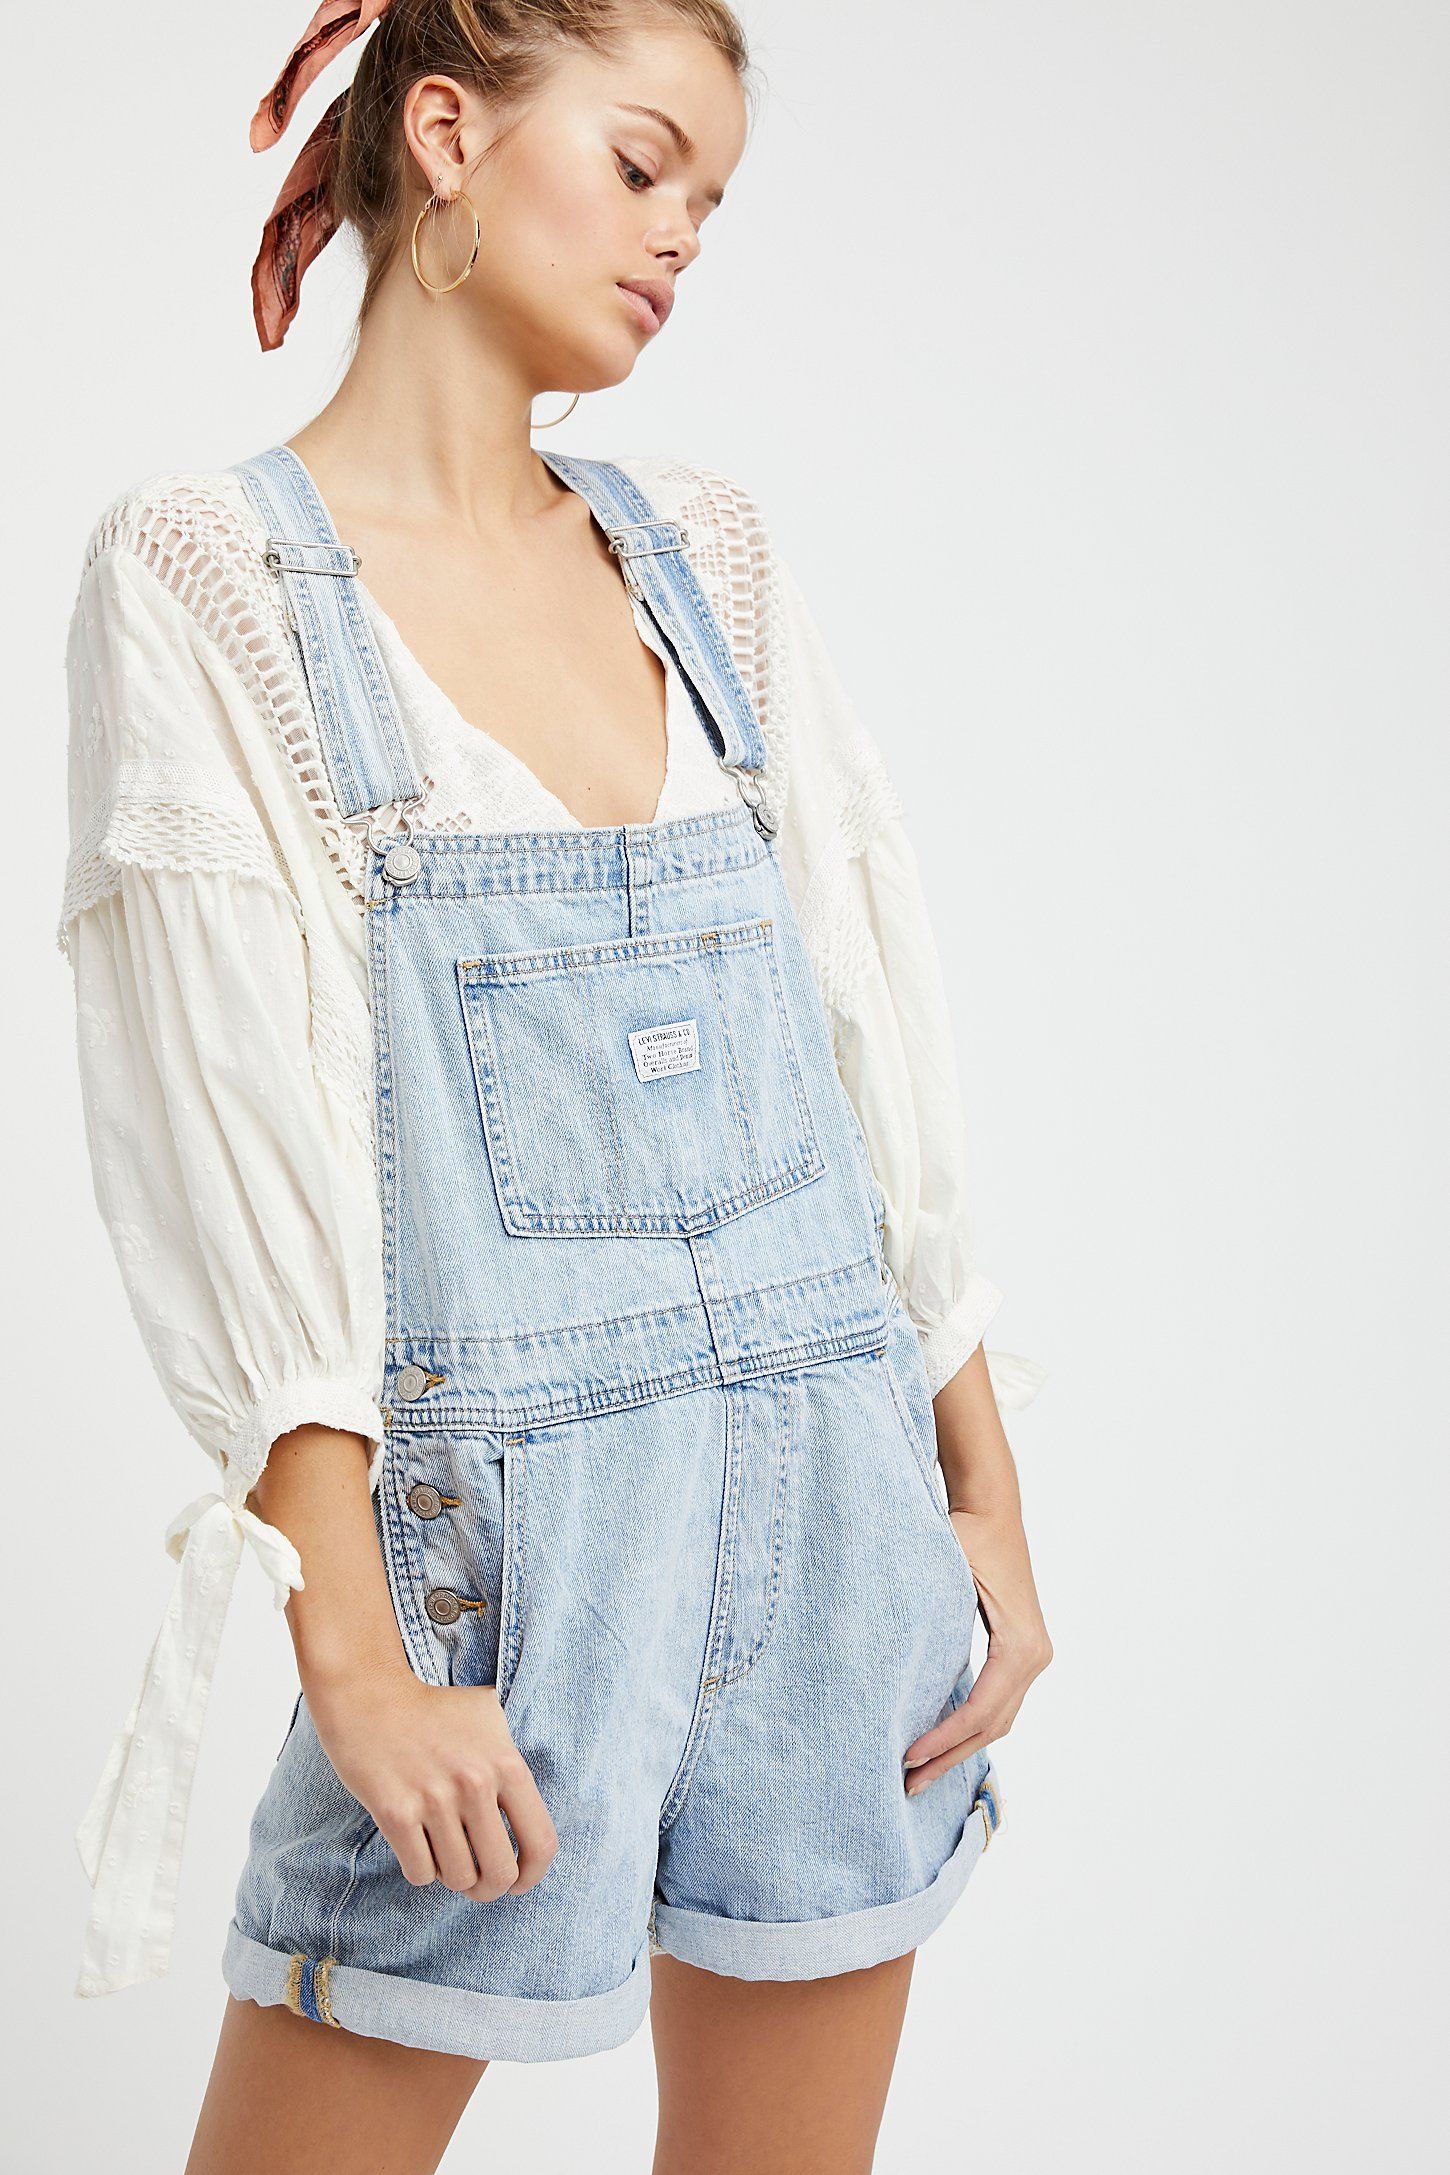 69865af8d66 Shop our Vintage Shortall at FreePeople.com. Share style pics with FP Me